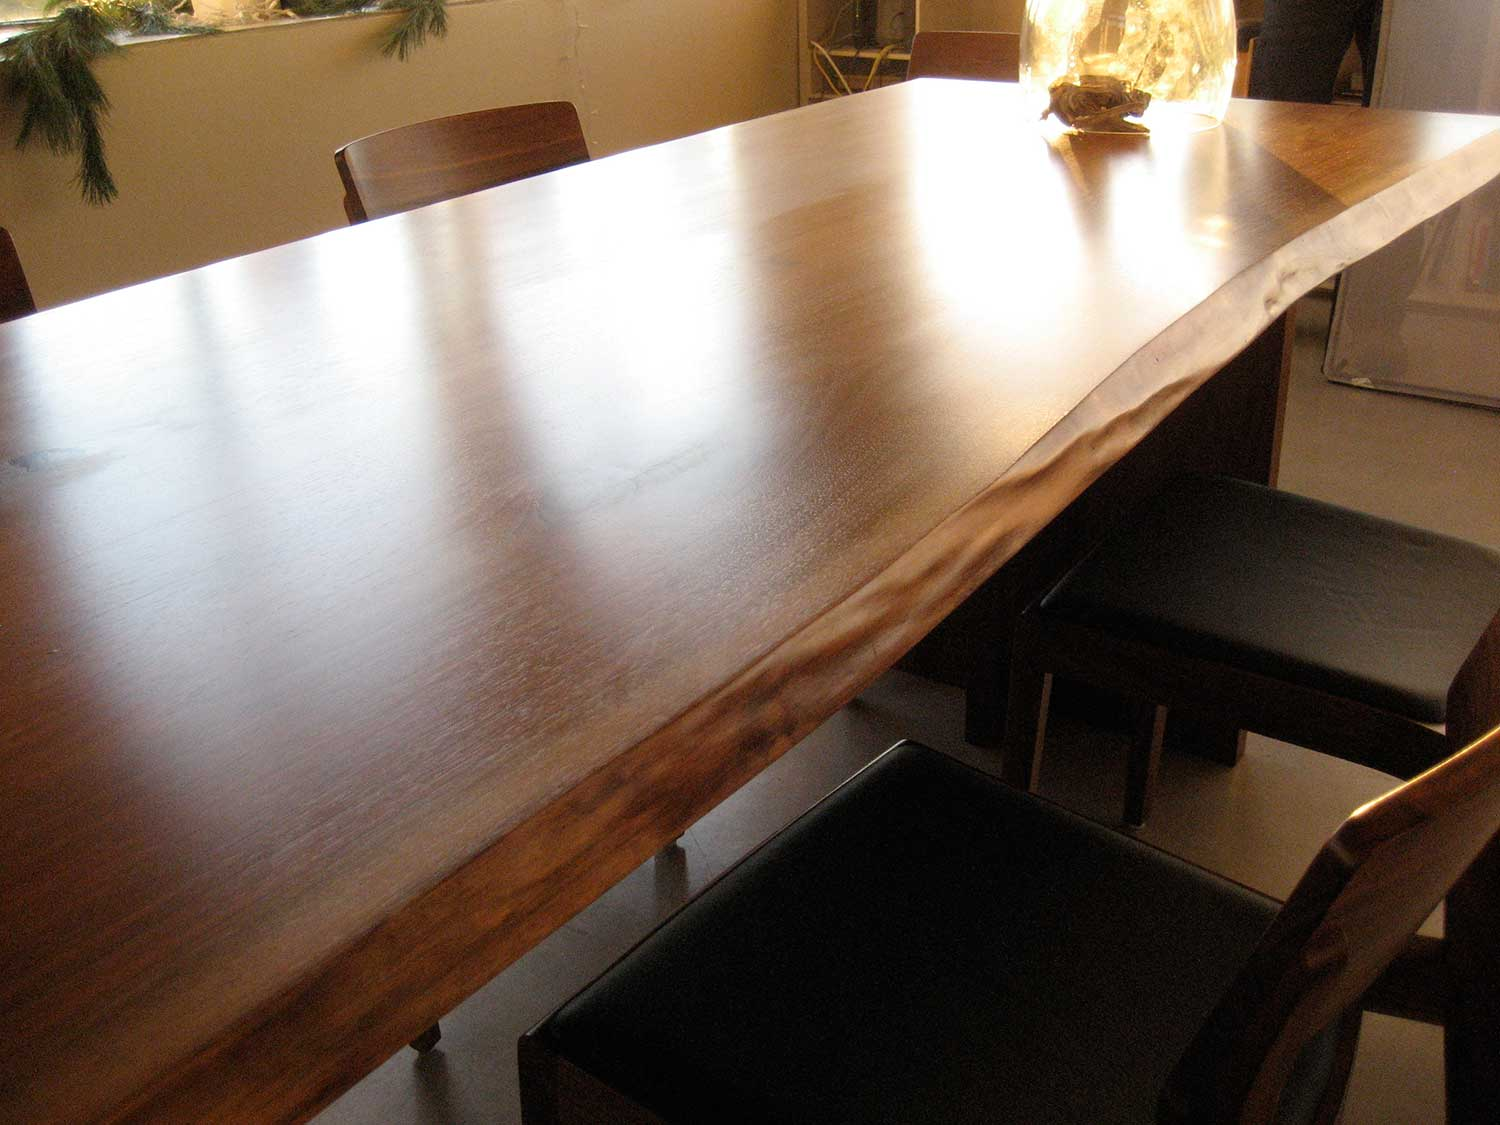 wickham-slender-live-edge-table6-paul-ohanlon-photo.jpg